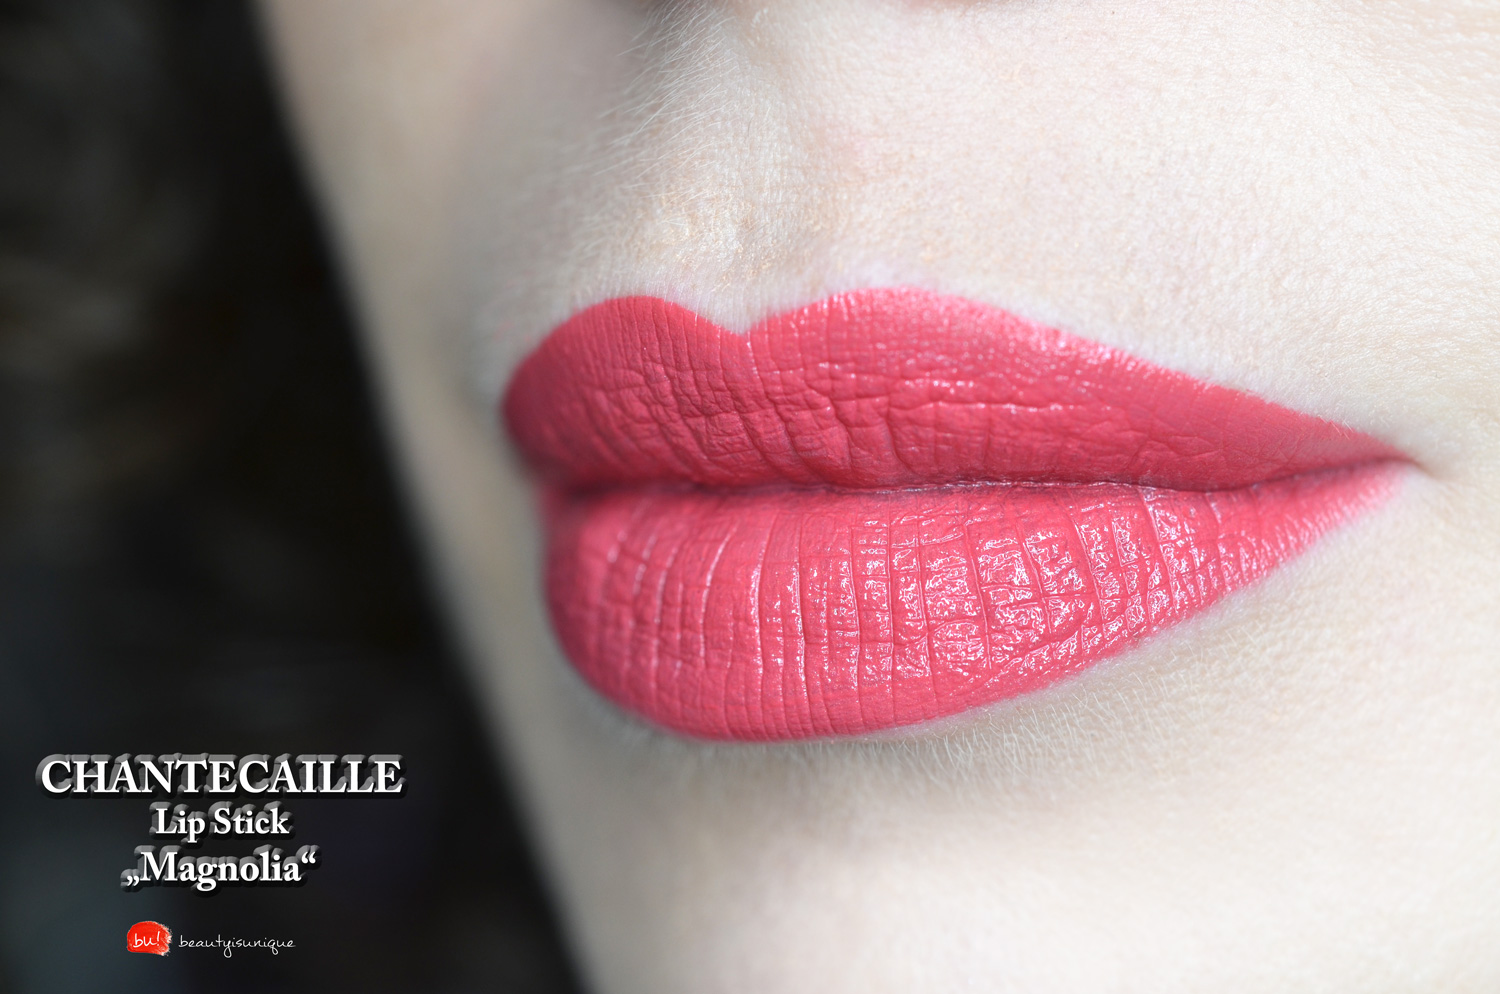 Chantecaille-lip-stick-magnolia-review